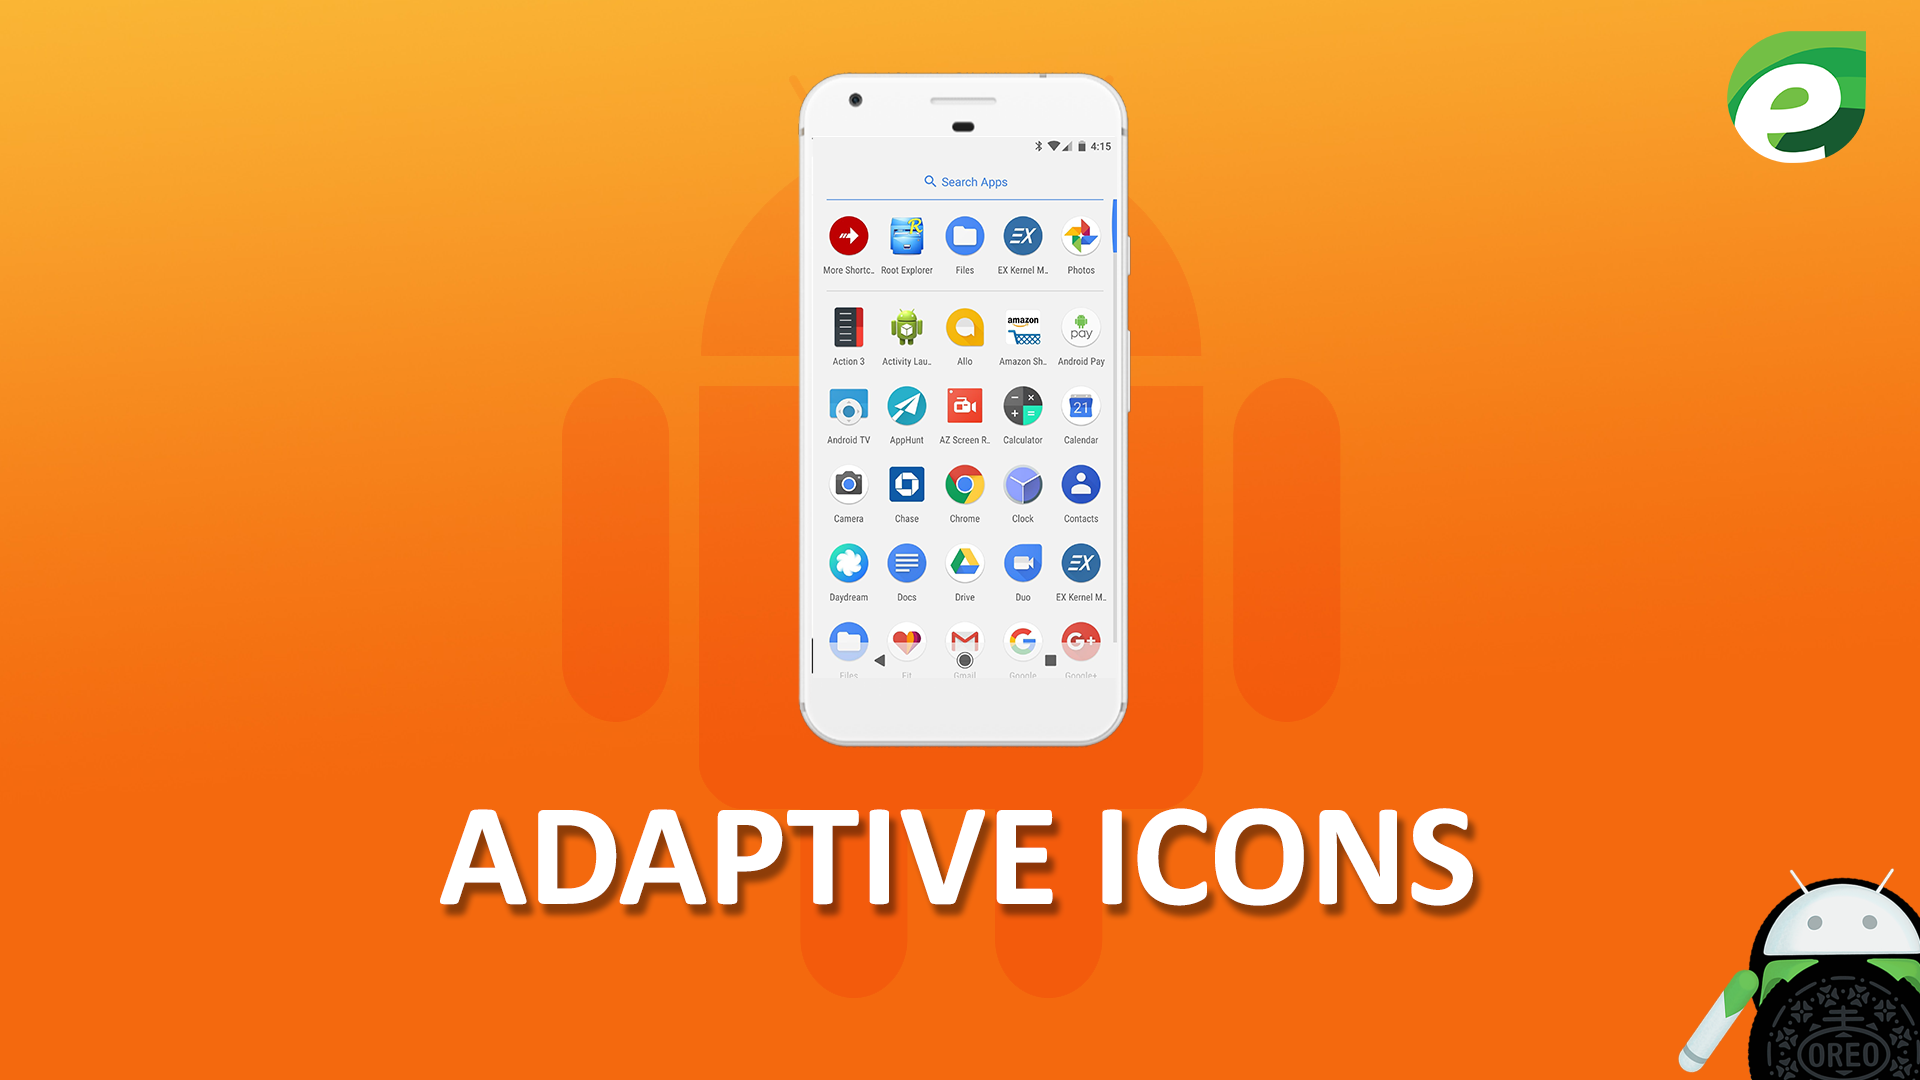 Android oreo- Adaptive icons